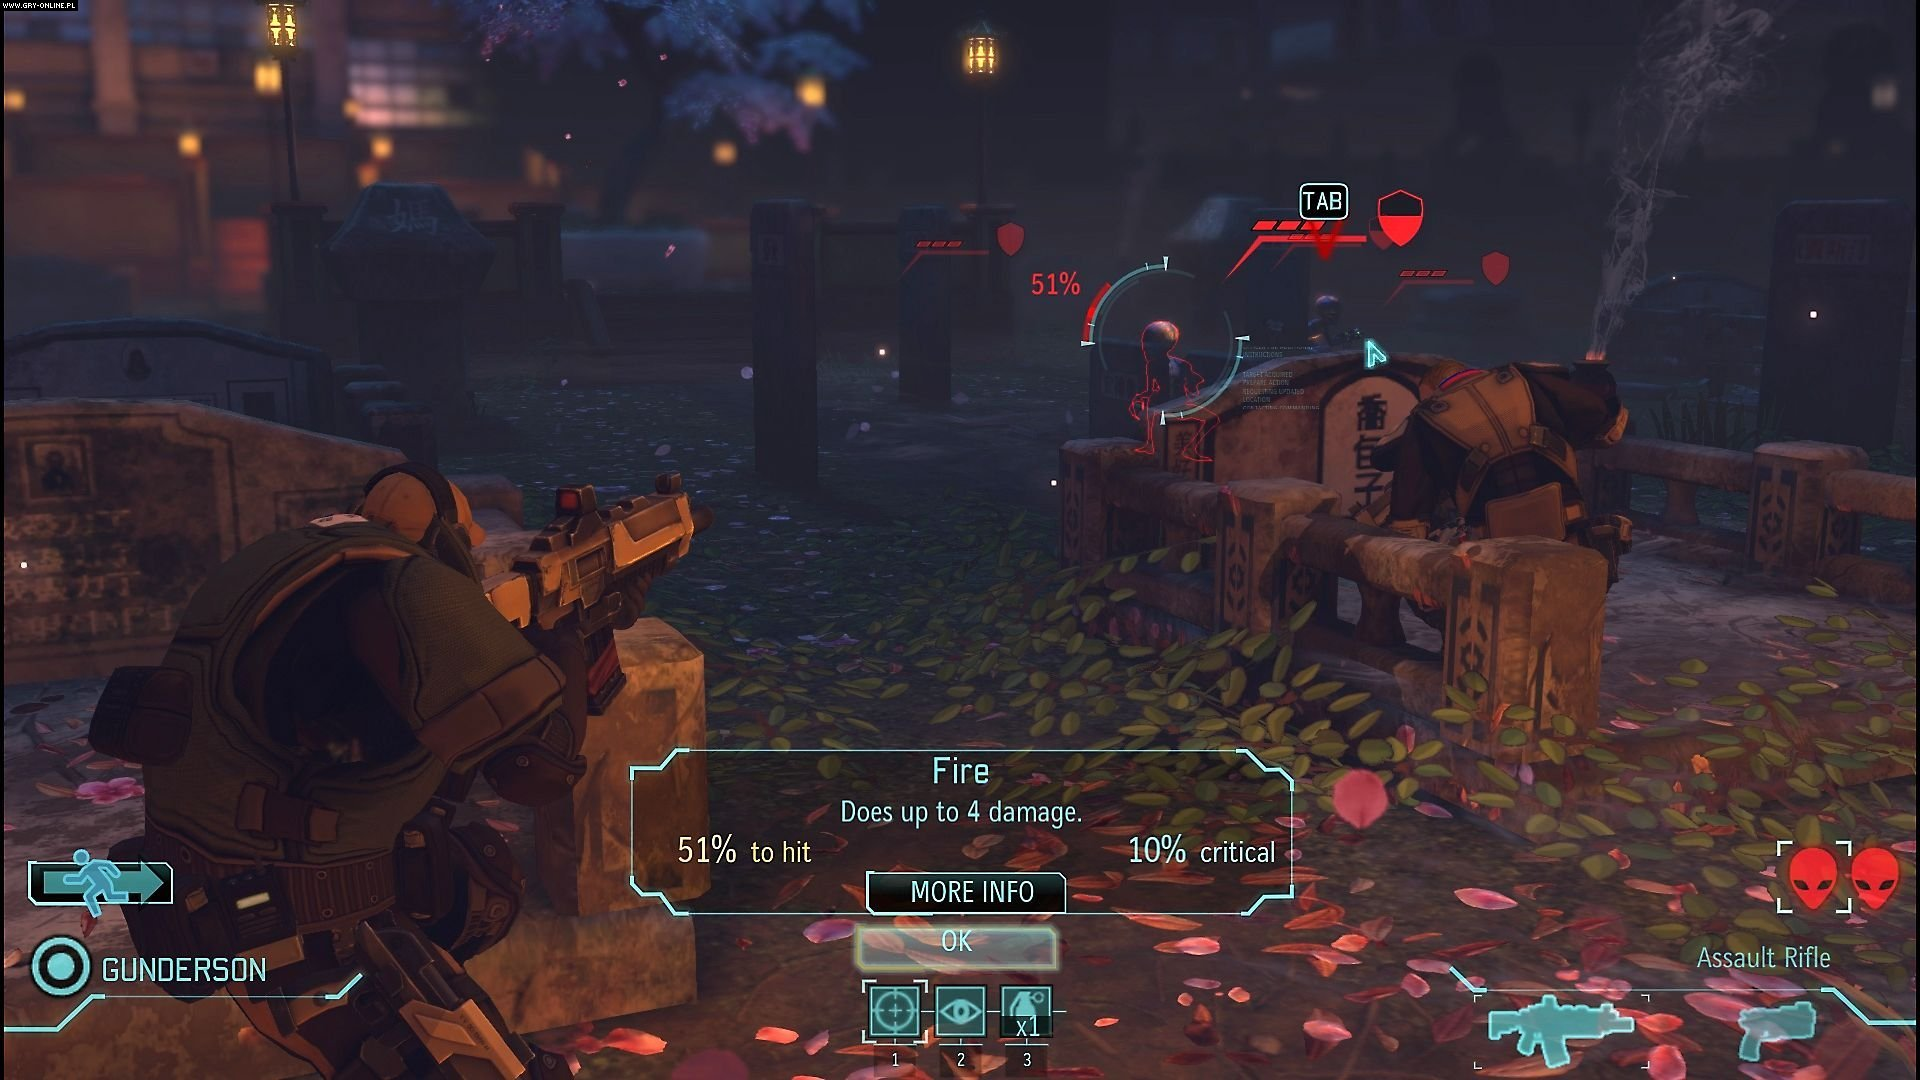 XCOM: Enemy Unknown PC, X360, PS3 Gry Screen 2/179, Firaxis Games, 2K Games